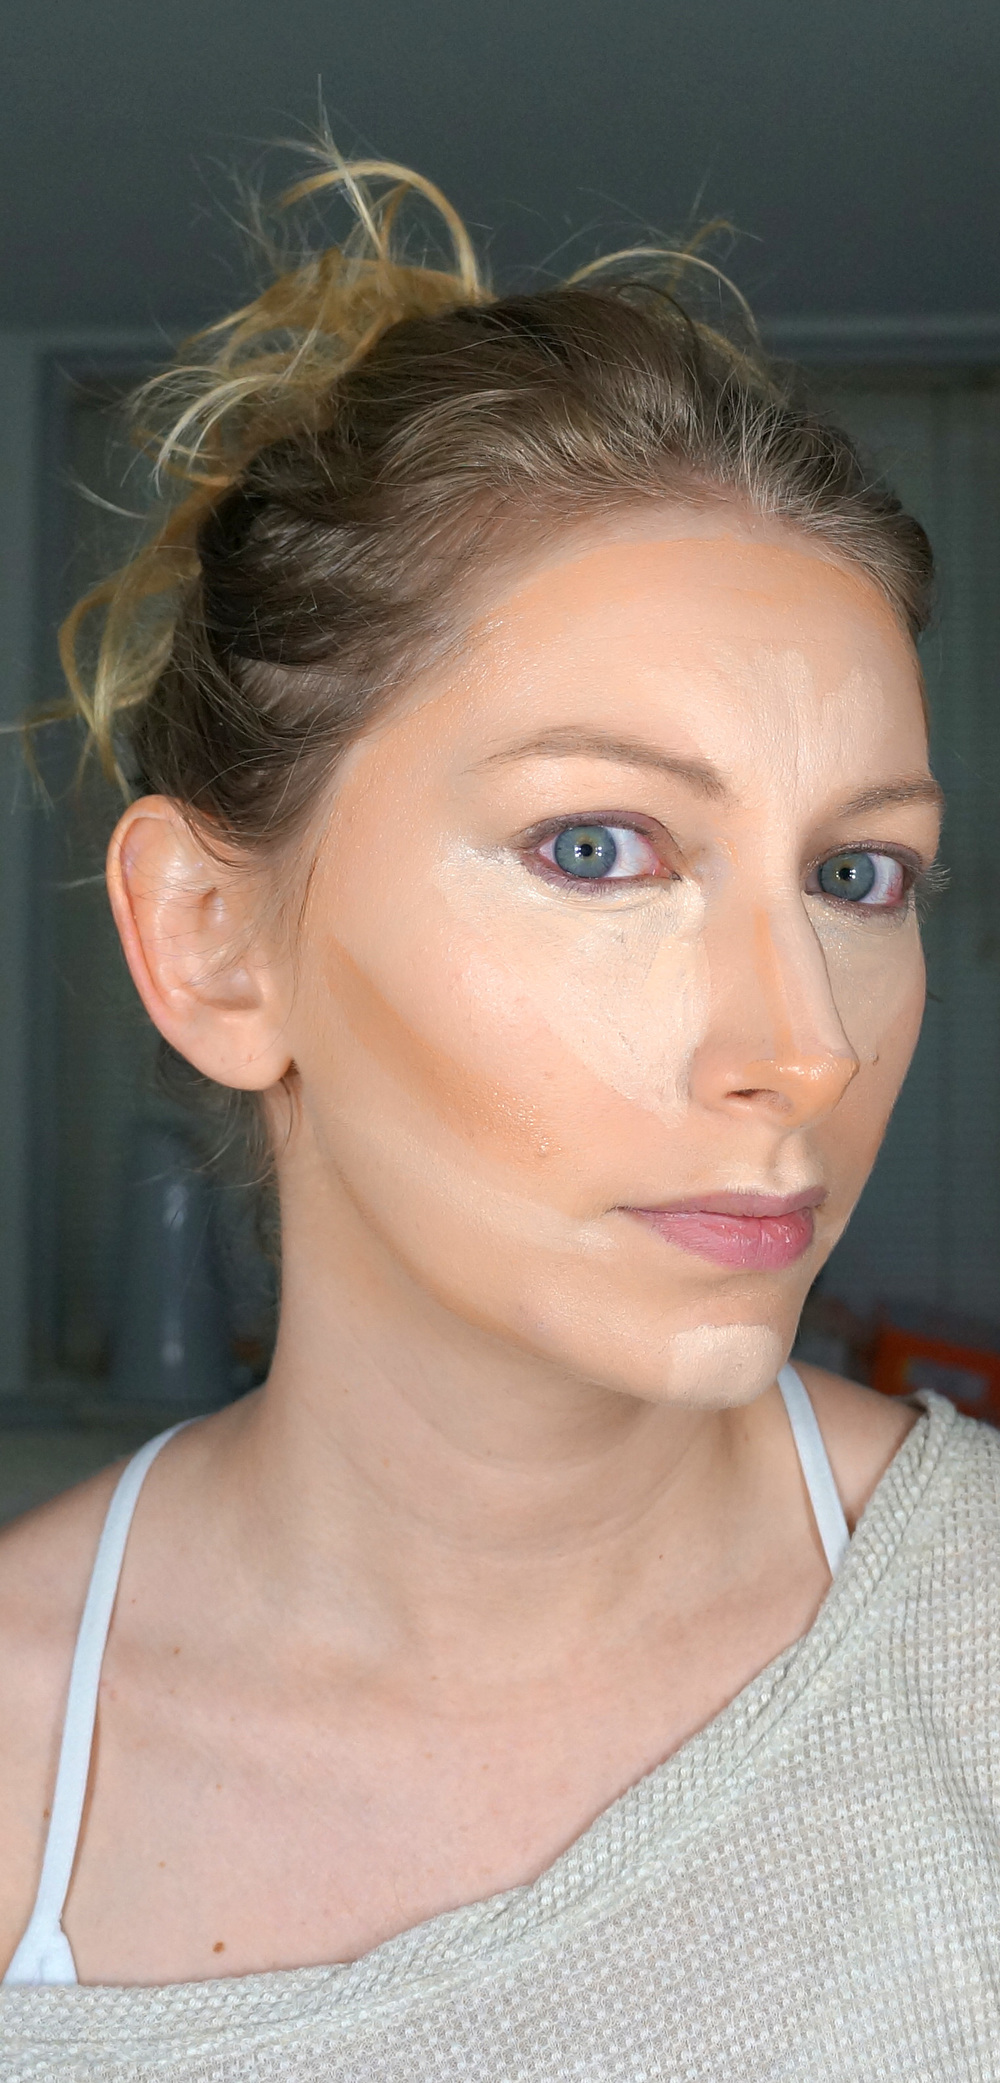 Apply a concealer or a foundation a few shades lighter than your skintone to areas you want to project forward. These areas are under your eyes, down the center of your nose, the cupids bow of your upper lip, above your jawline, and your chin.  Next, apply a foundation a few shades darker than your skintone to areas you wish to recede. These areas are the hollows of your cheeks, down the sides of your nose, your temples and across the hairline on your forehead, under your jawline, and a smidge under your bottom lip.